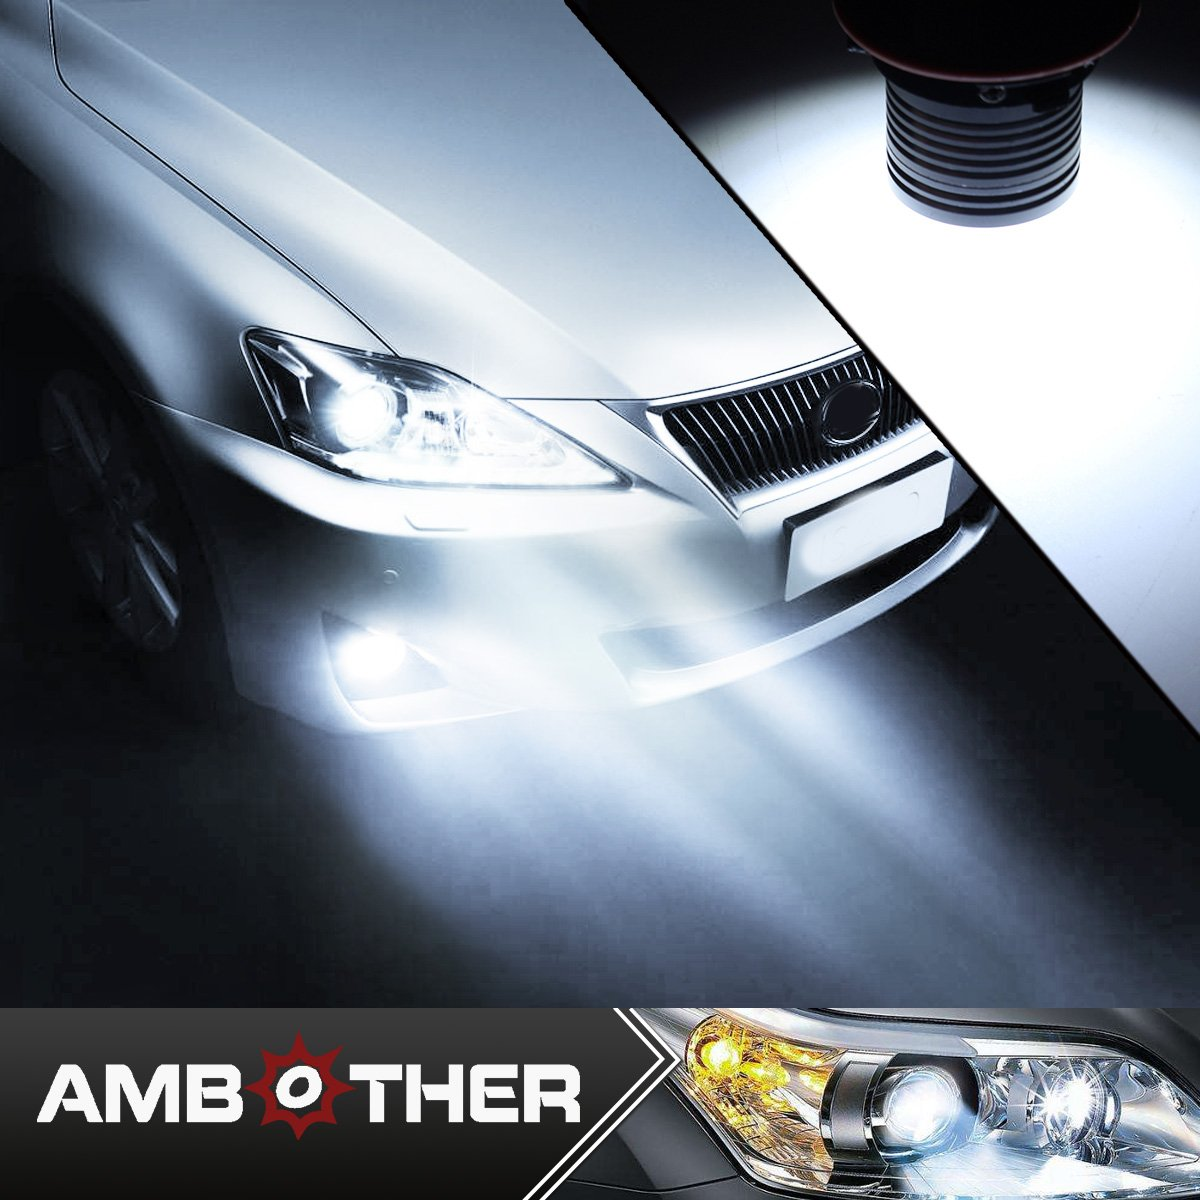 AMBOTHER 2 x LED Auto Faros de Xenón Auto Headlight Angel Eyes luz RGB LED marcador Ángel Ojos 3 W 7000 K Blanco para: Amazon.es: Coche y moto